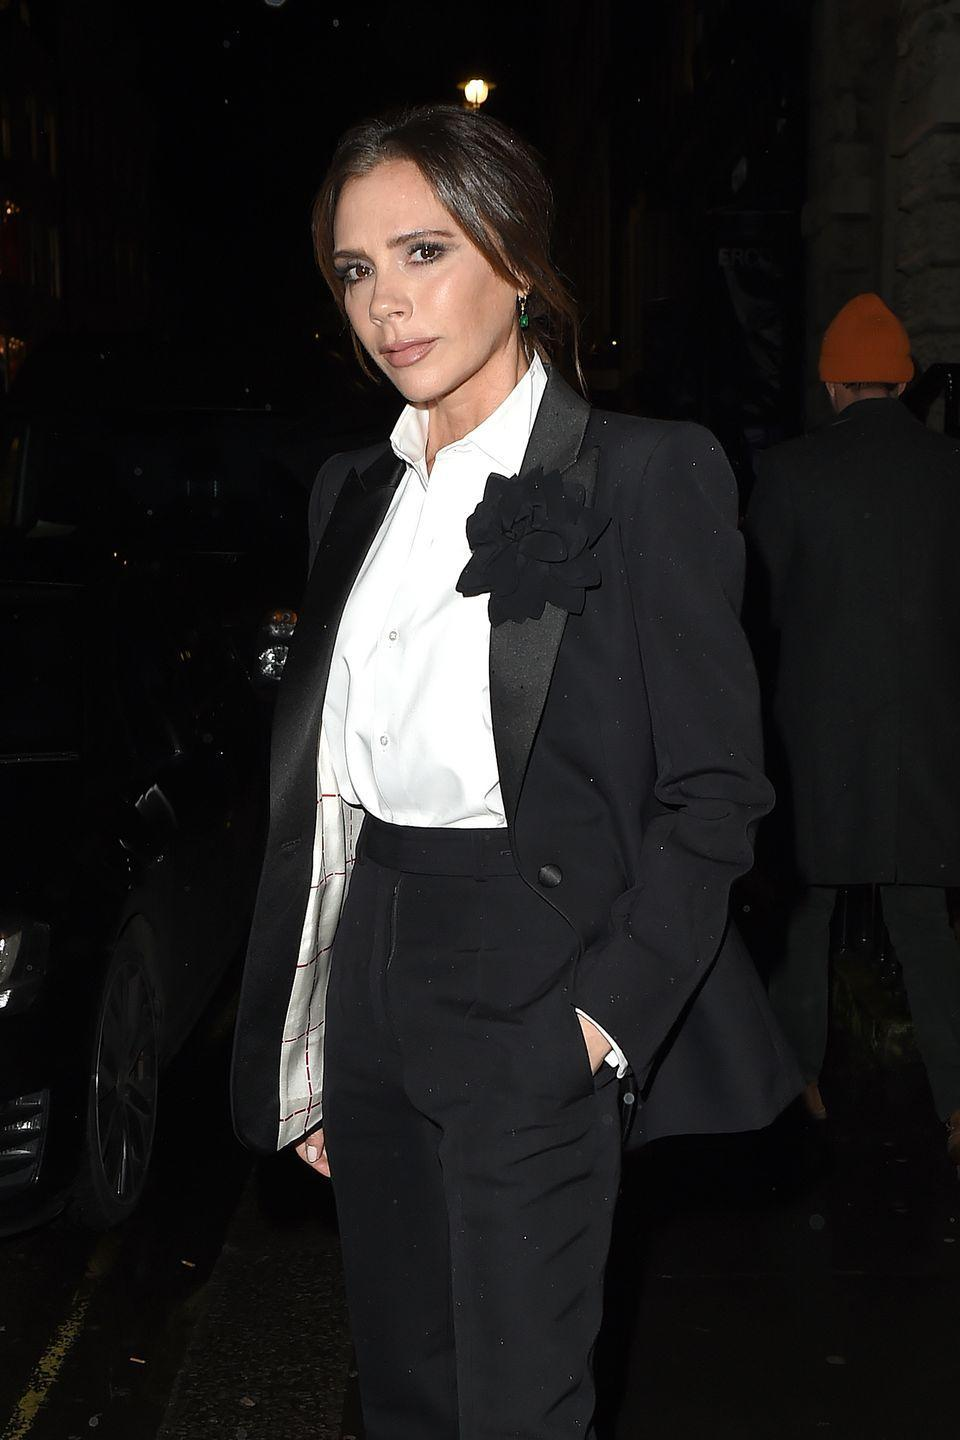 <p>Now Beckham is known as a successful fashion designer rather than a pop star. Her Victoria Beckham line is extremely successful, and Beckham herself has taken on the role of chic style star - no platform sneakers in sight. </p>